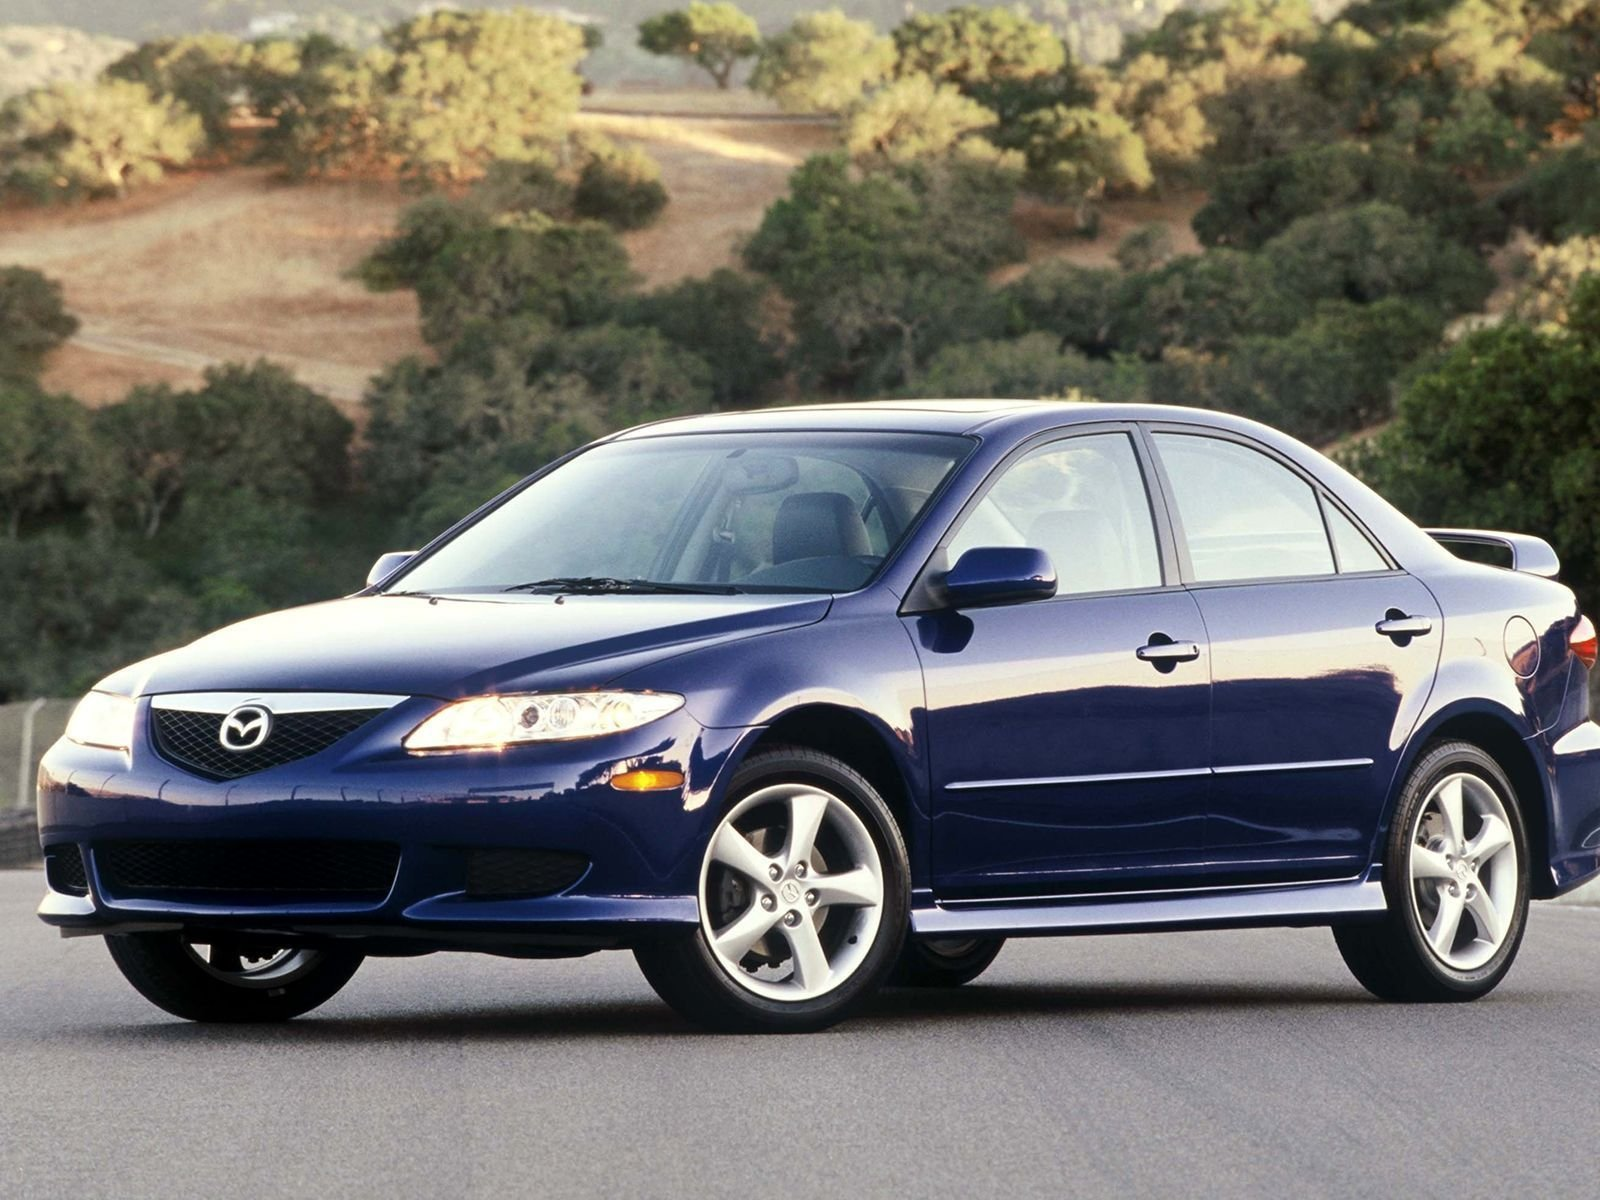 2006 mazda 6 picture 25497 car review top speed. Black Bedroom Furniture Sets. Home Design Ideas